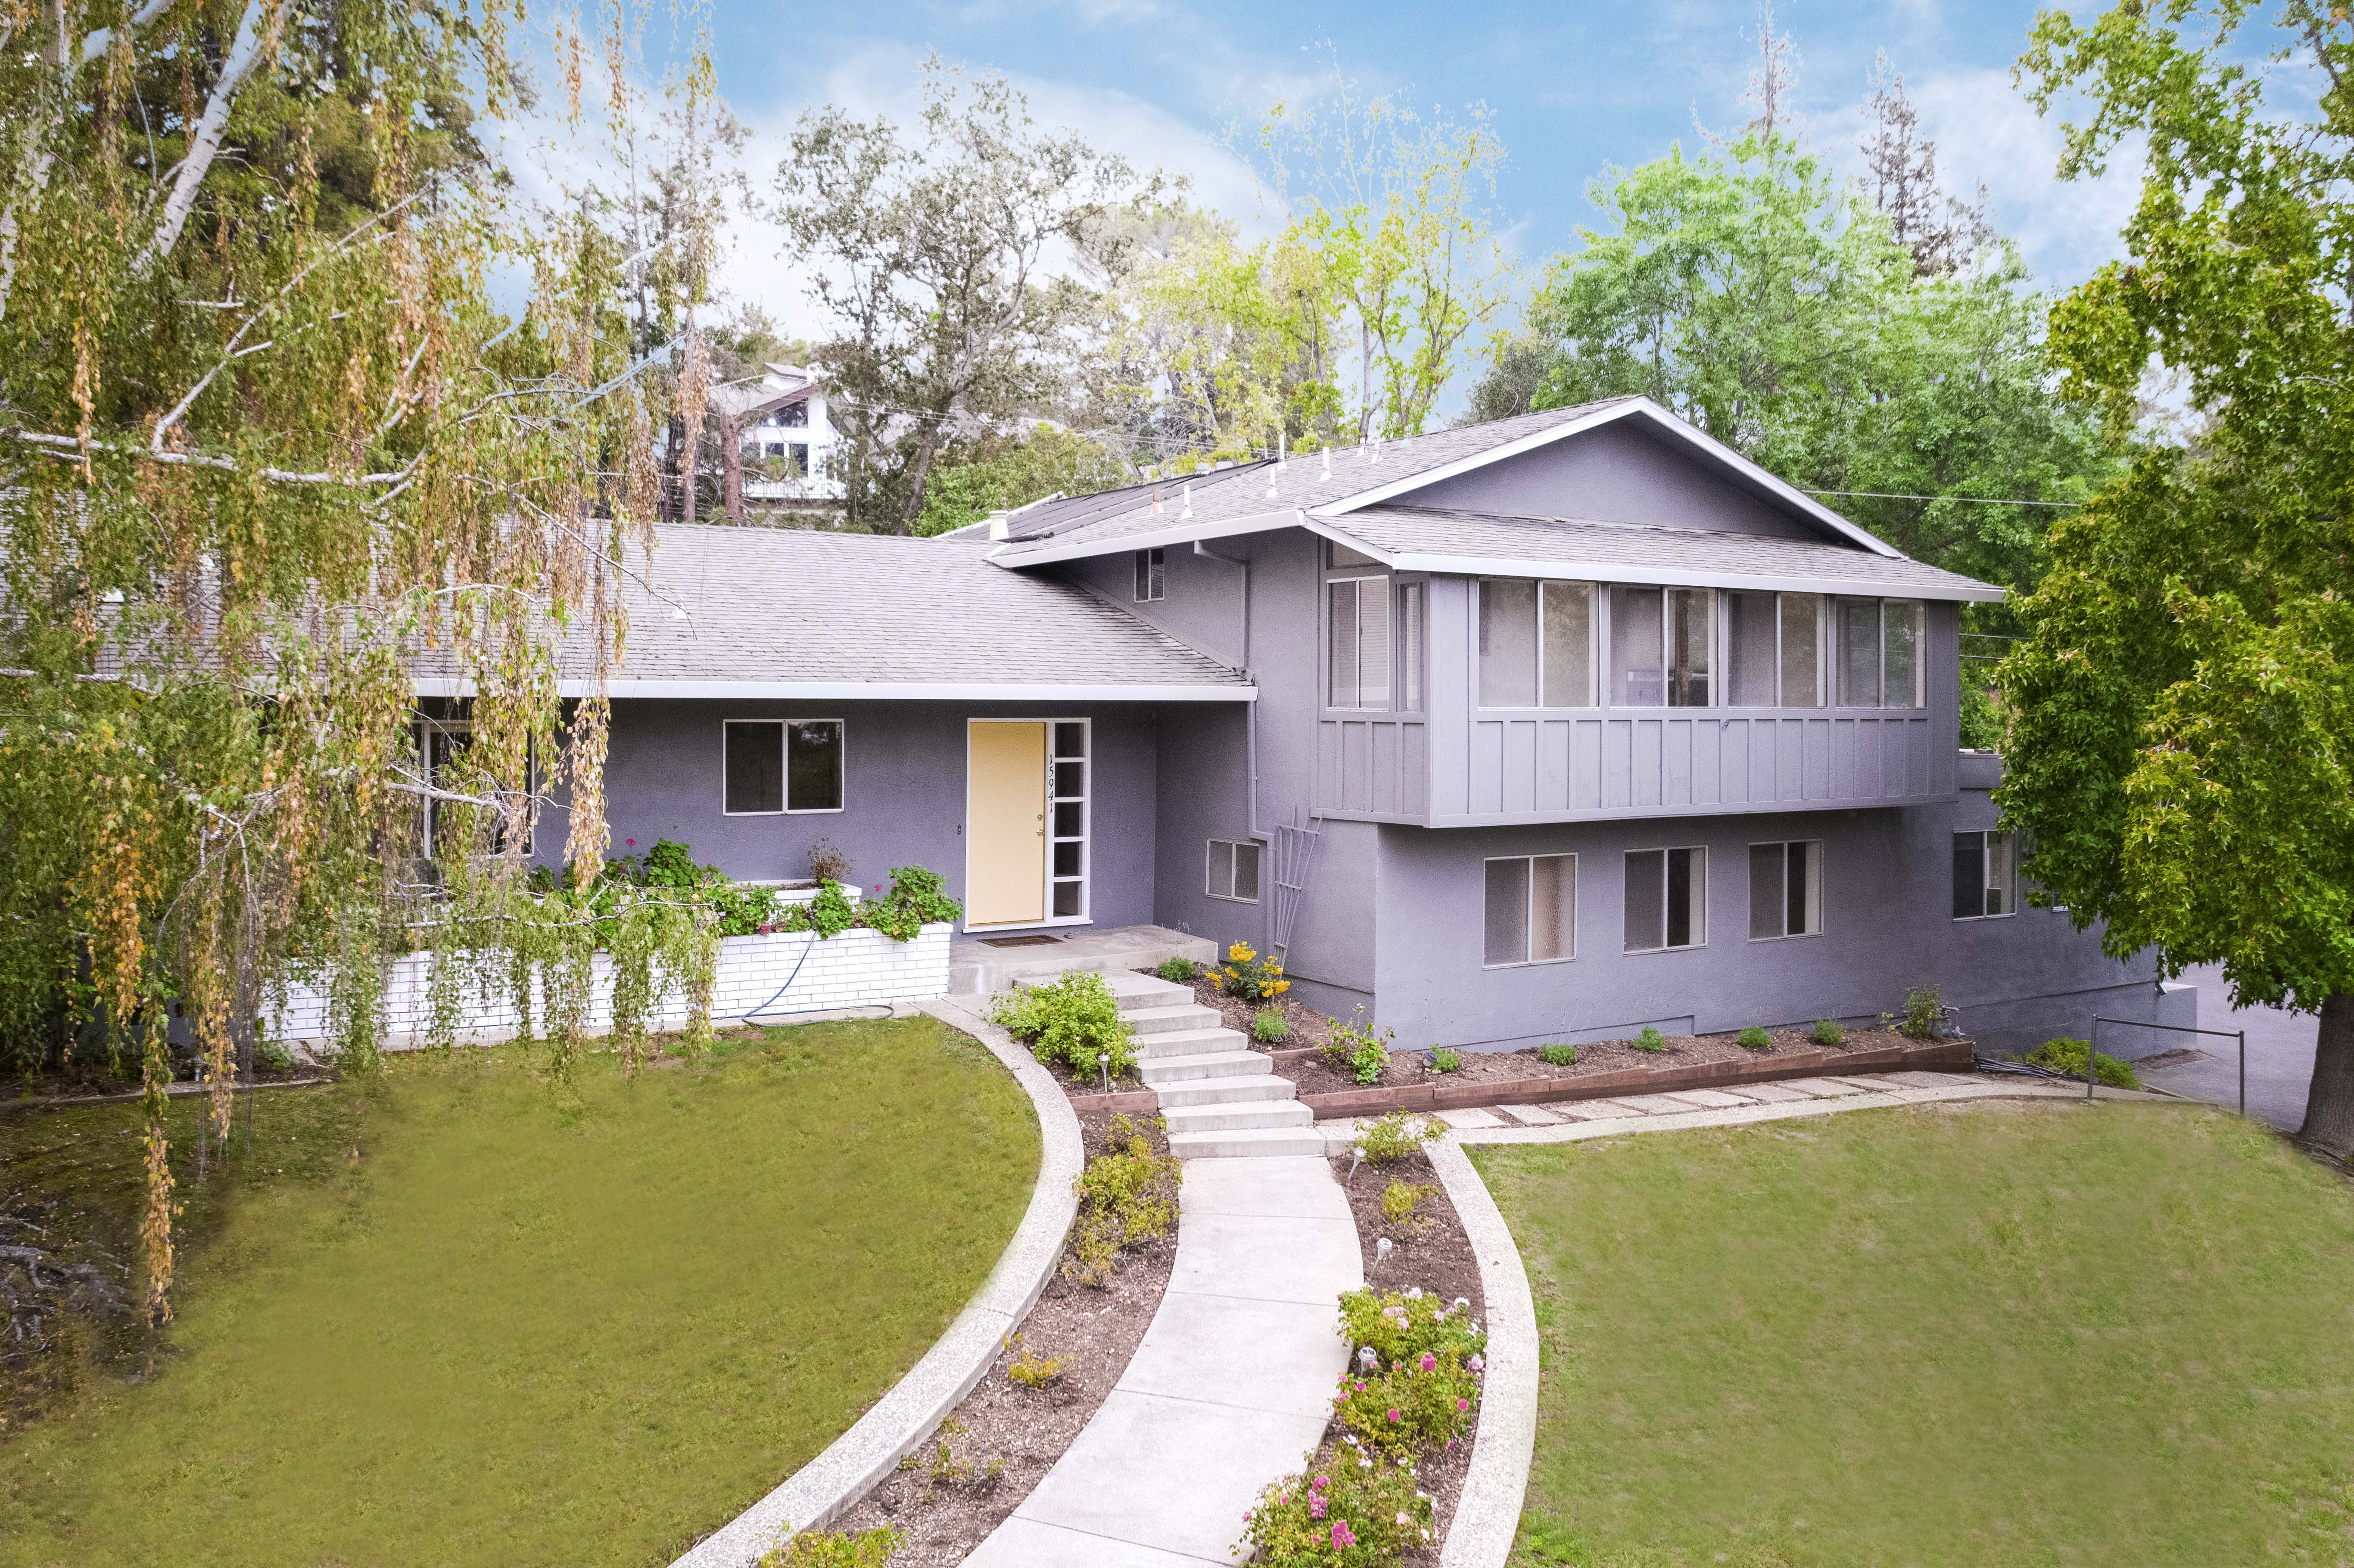 Sold  $3,325,000